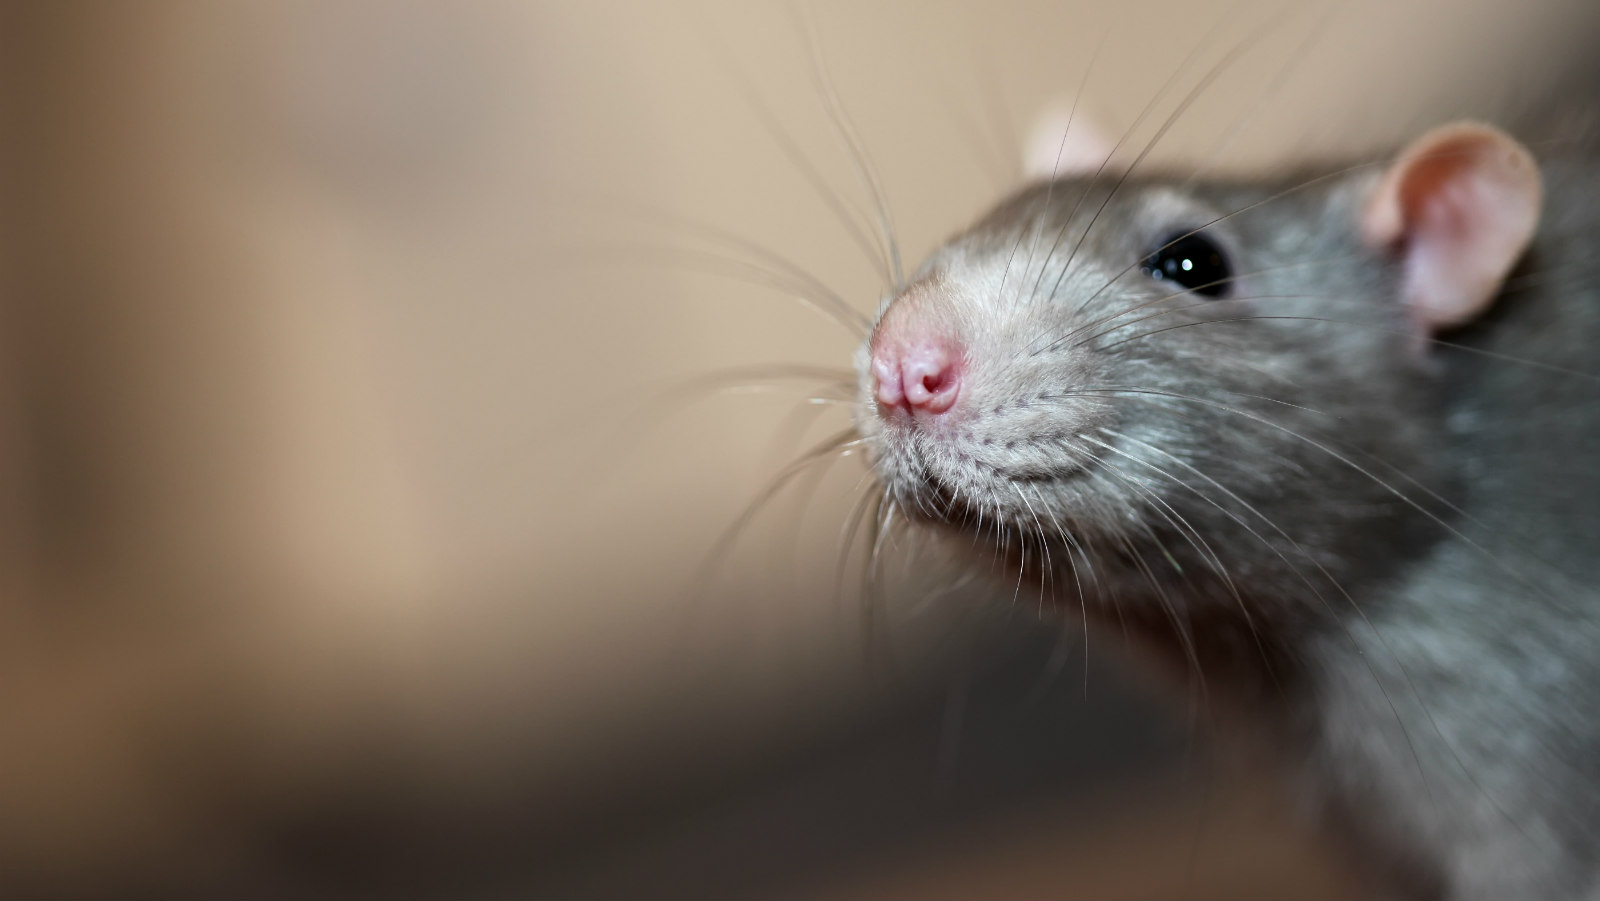 Signs of Illness in Rats